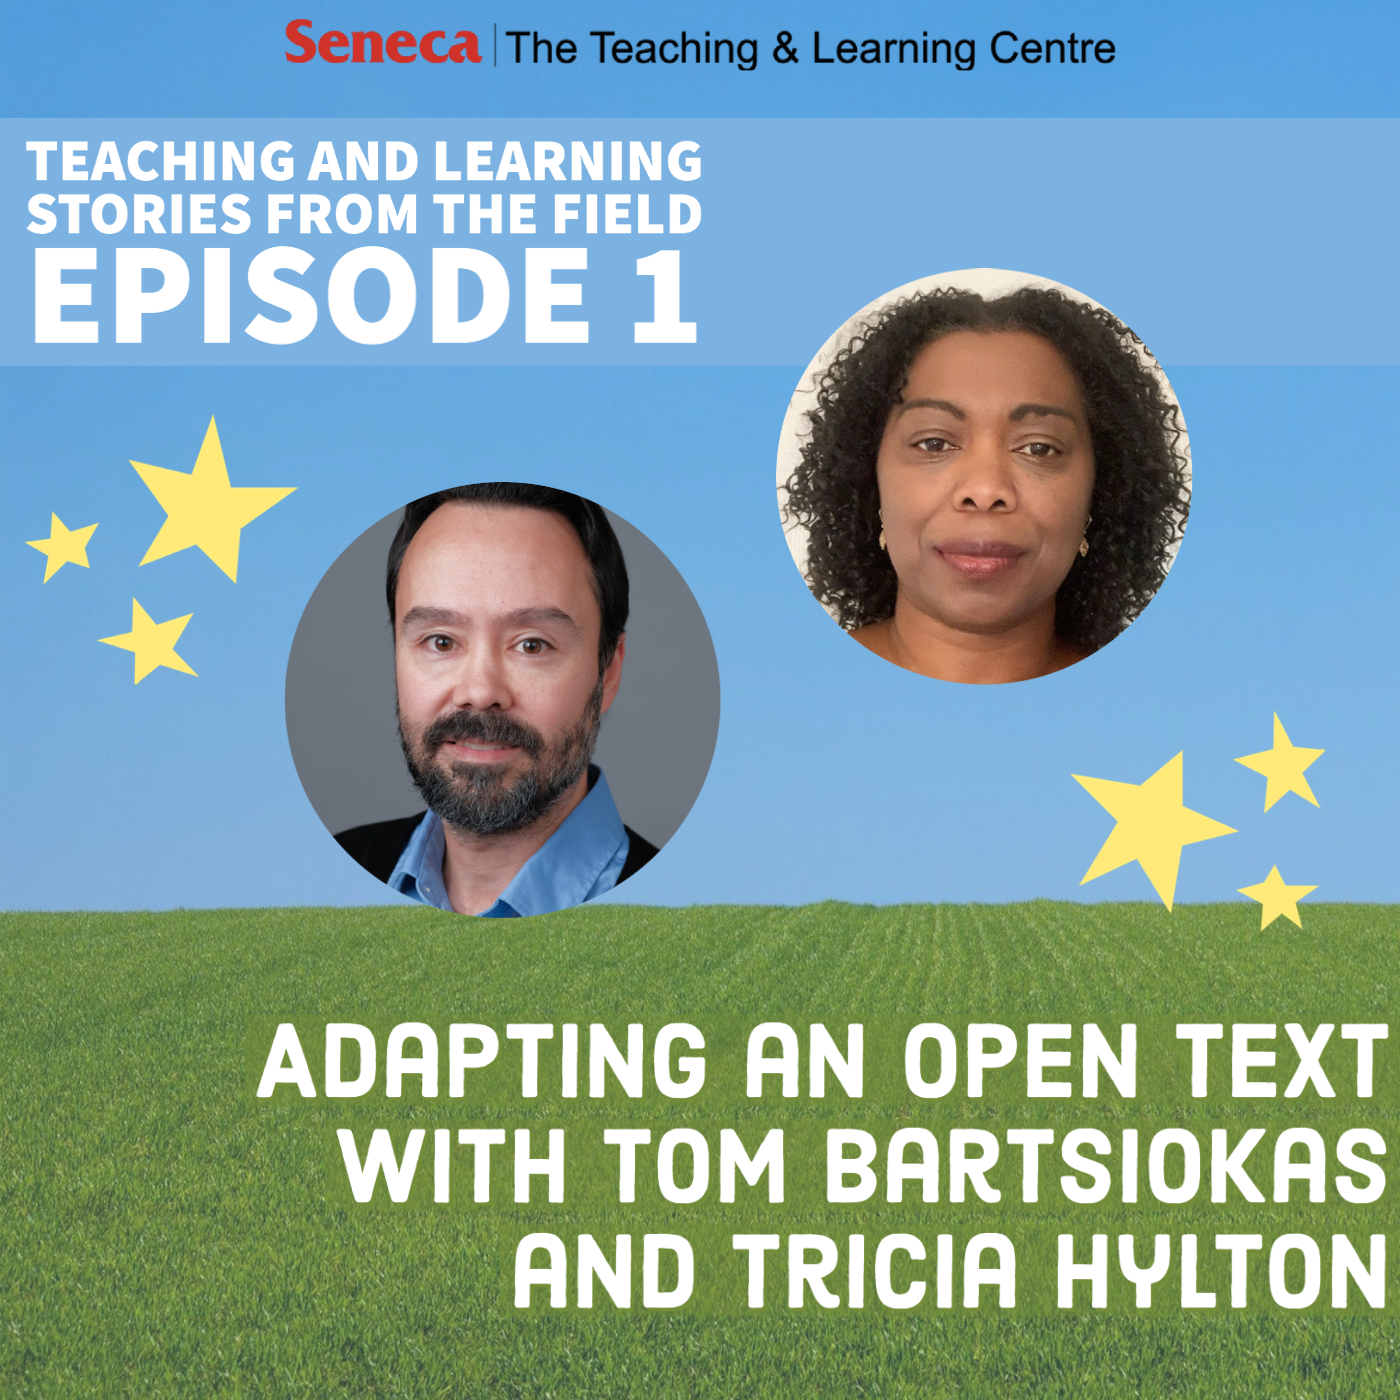 Episode 1 of the Teaching and Learning Stores podcast is called Adapting an Open Text with Tom Bartsiokas and Tricia Hylton